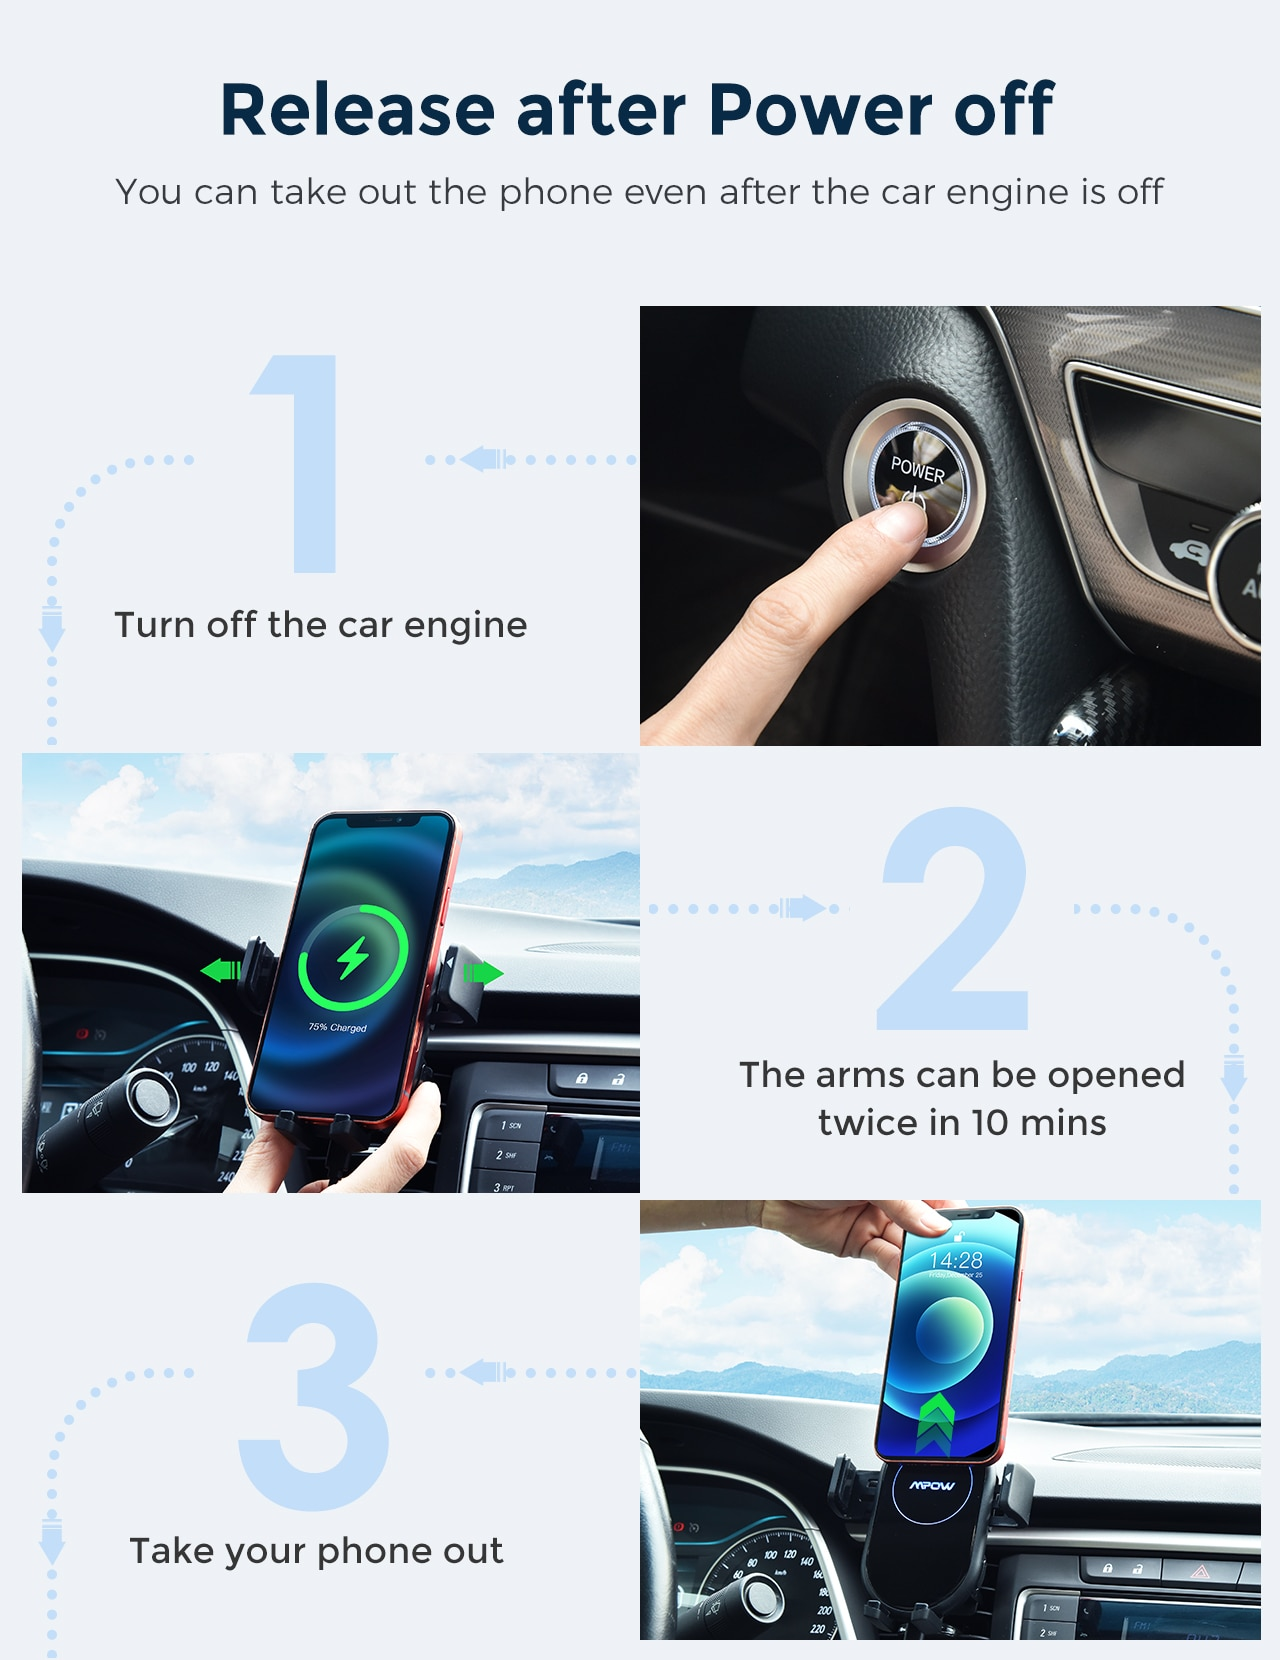 H3814d4f3cf3c41ae931102342ea48527s - MPOW CA160 Wireless Car Charger 15W Auto-clamping Qi Fast Charging Car Mount with Built-in Battery Cup Holder Vent Phone Holder